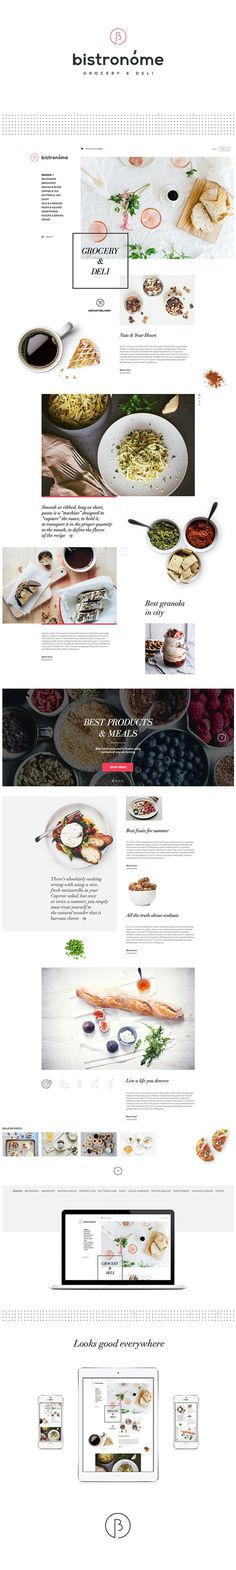 Bistronóme — Naming, Logotype & Website on Behance #webpage #restaurant